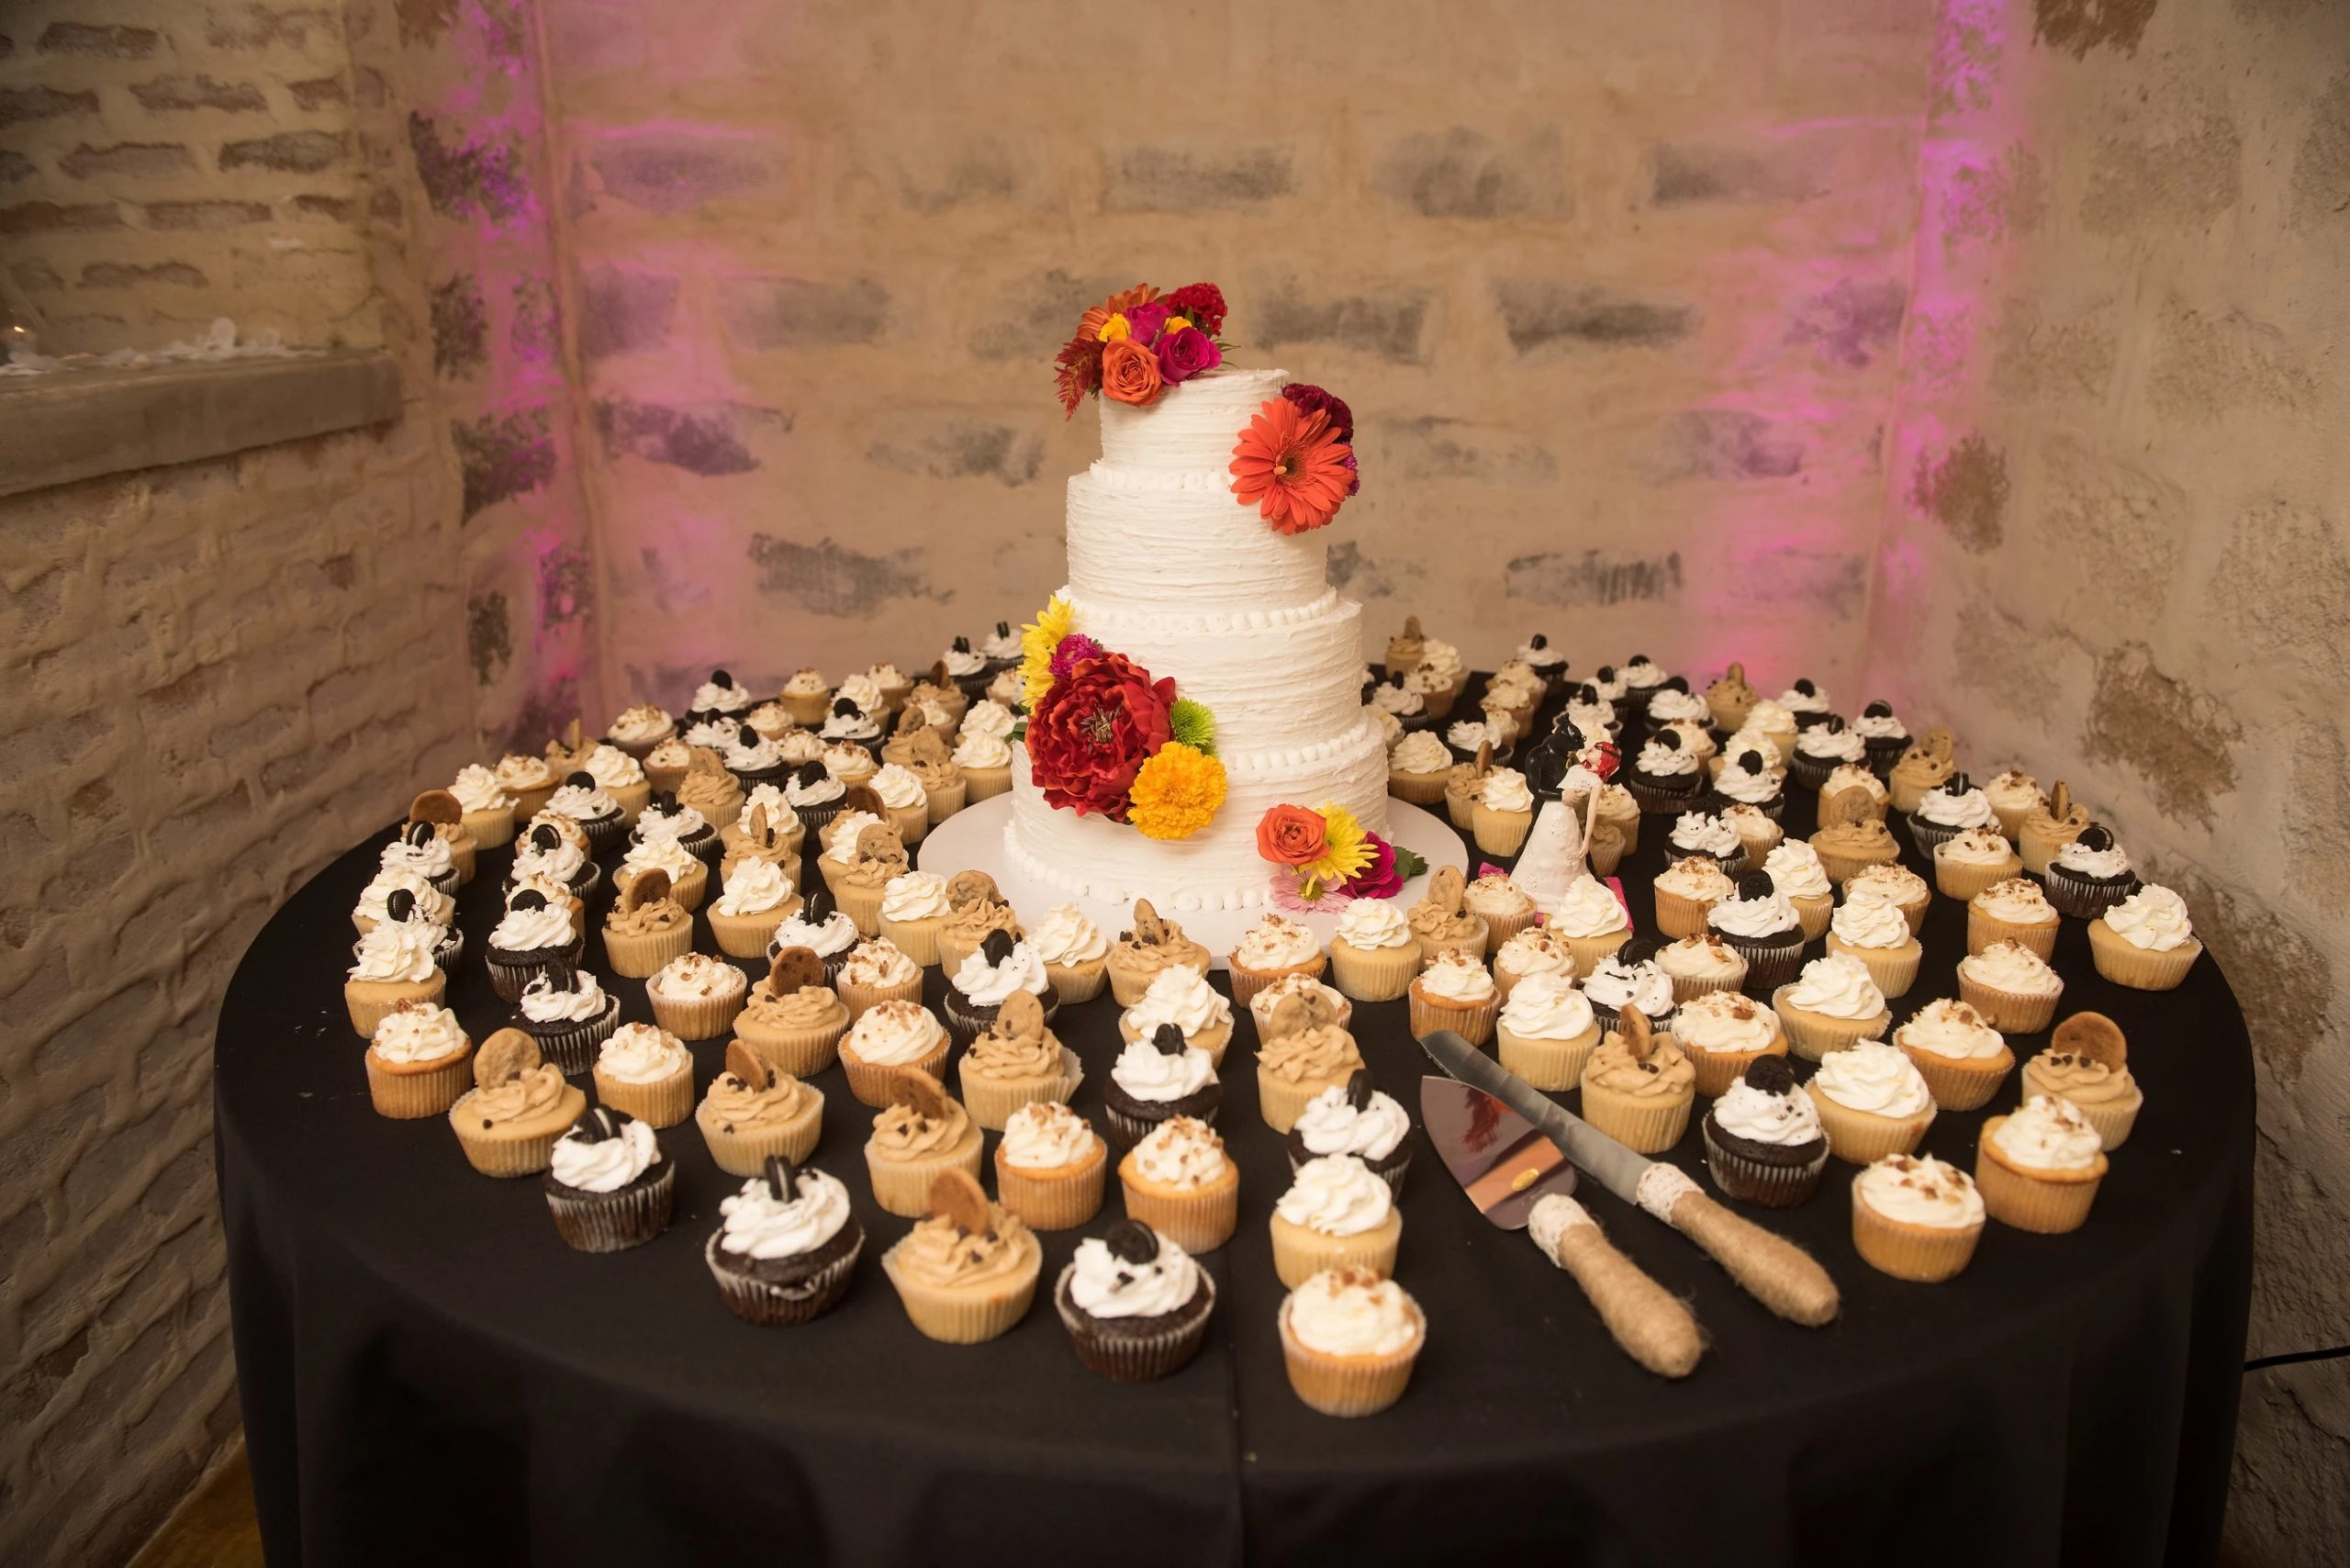 Bride on a Budget Events-cakes and more